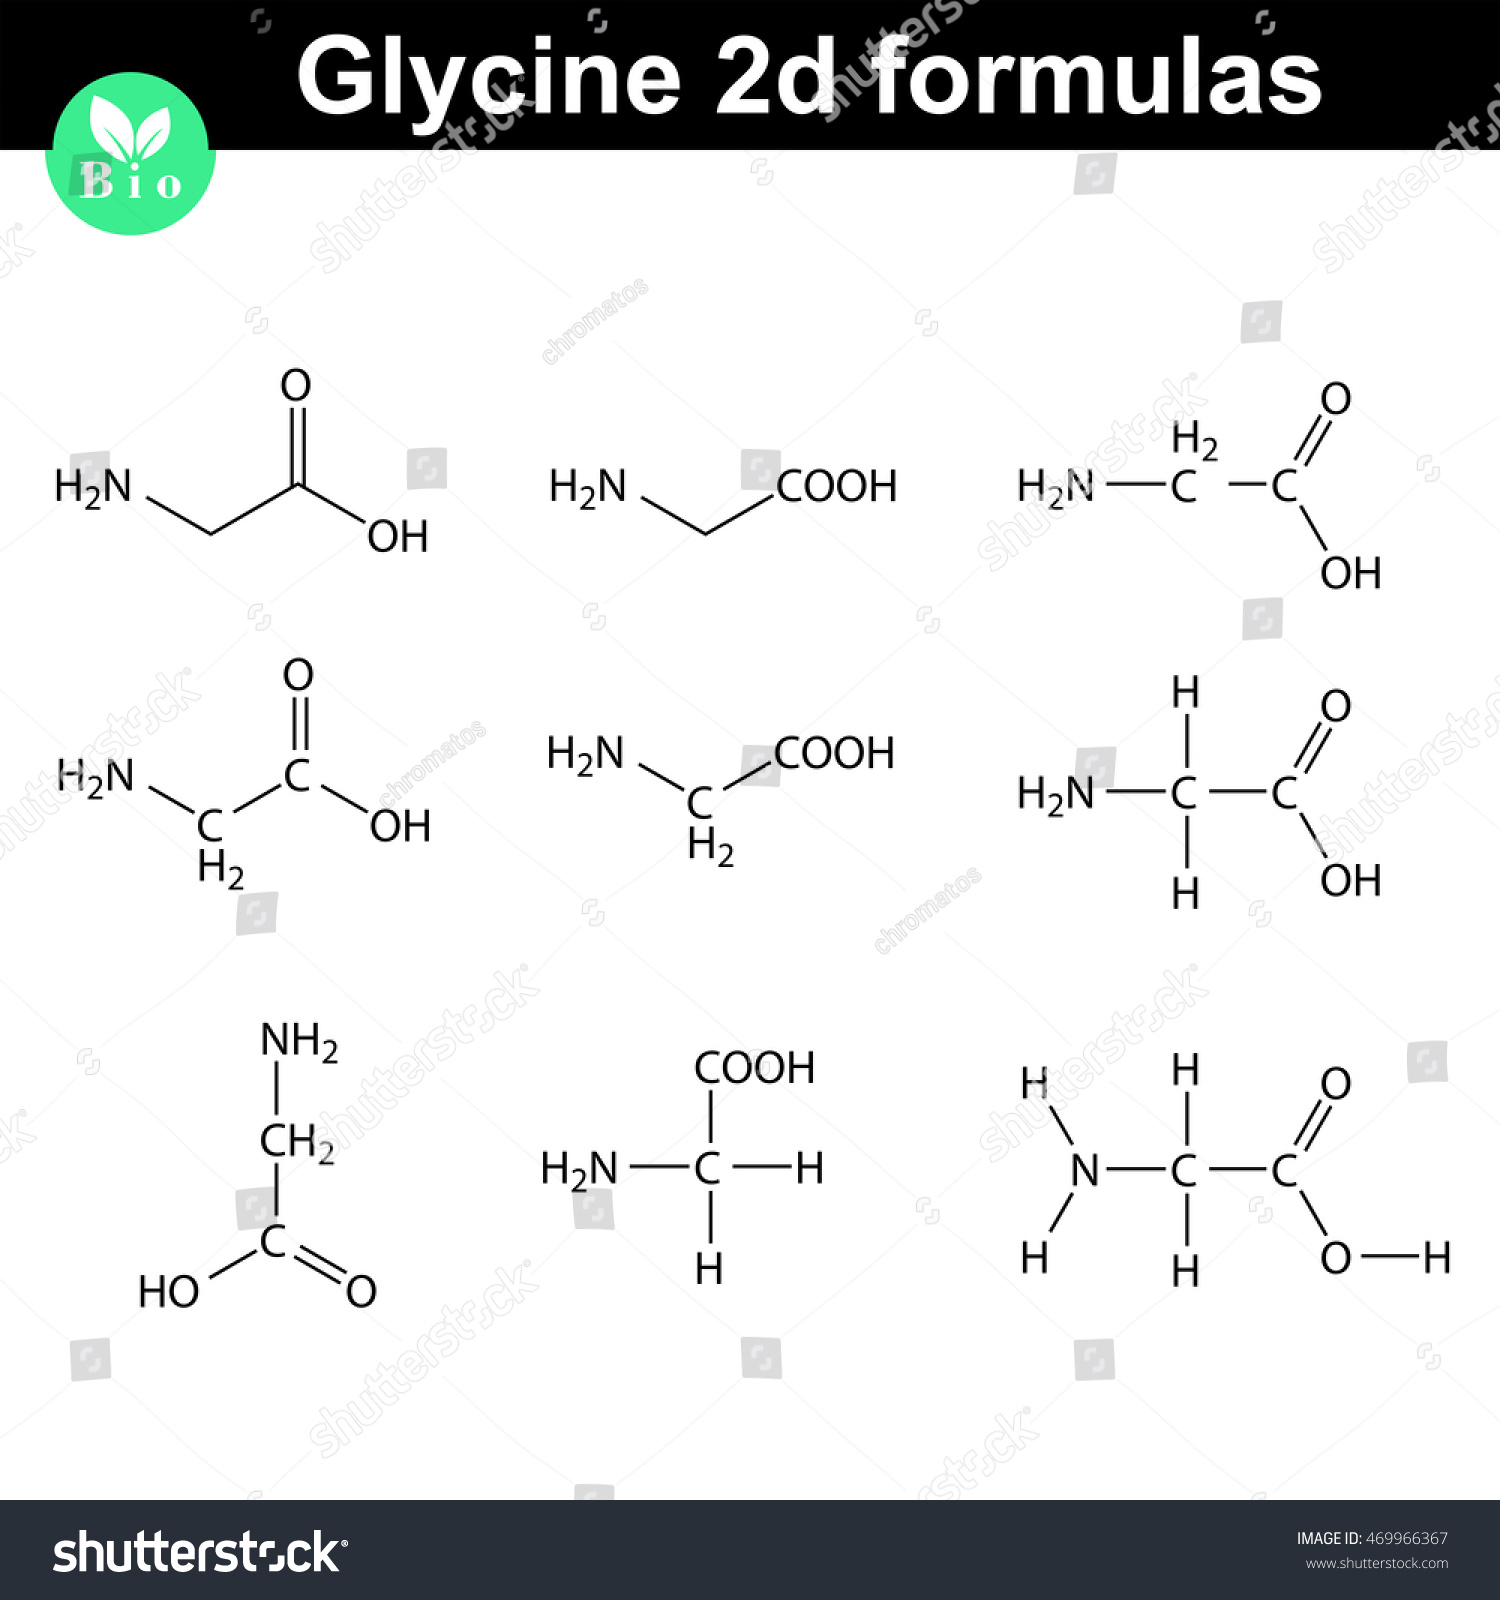 Glycine 2d Chemical Formulas Drawn In Different Styles